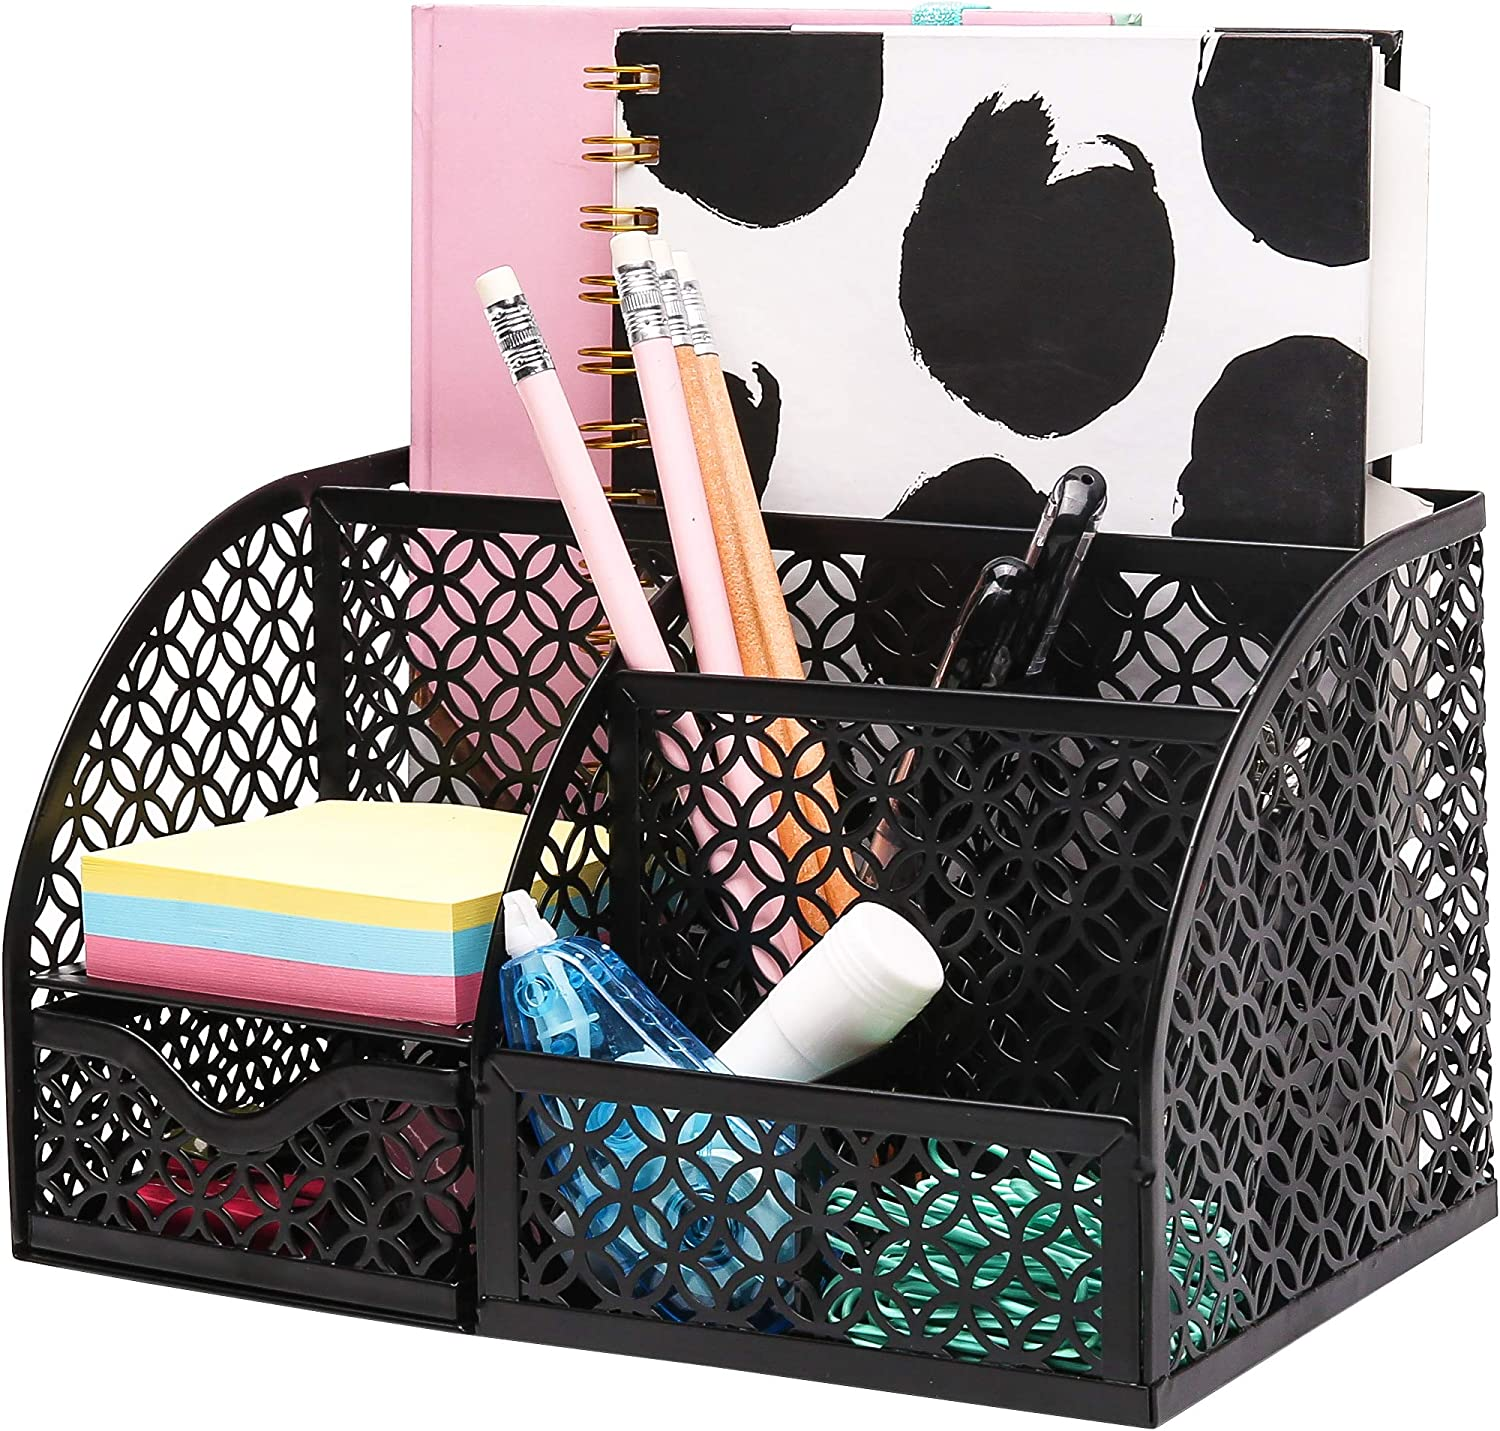 ANNOVA Mesh Desk Organizer Office with 7 Compartments + Drawer/Desk Tidy Candy/Pen Holder/Multifunctional Organizer (Black)